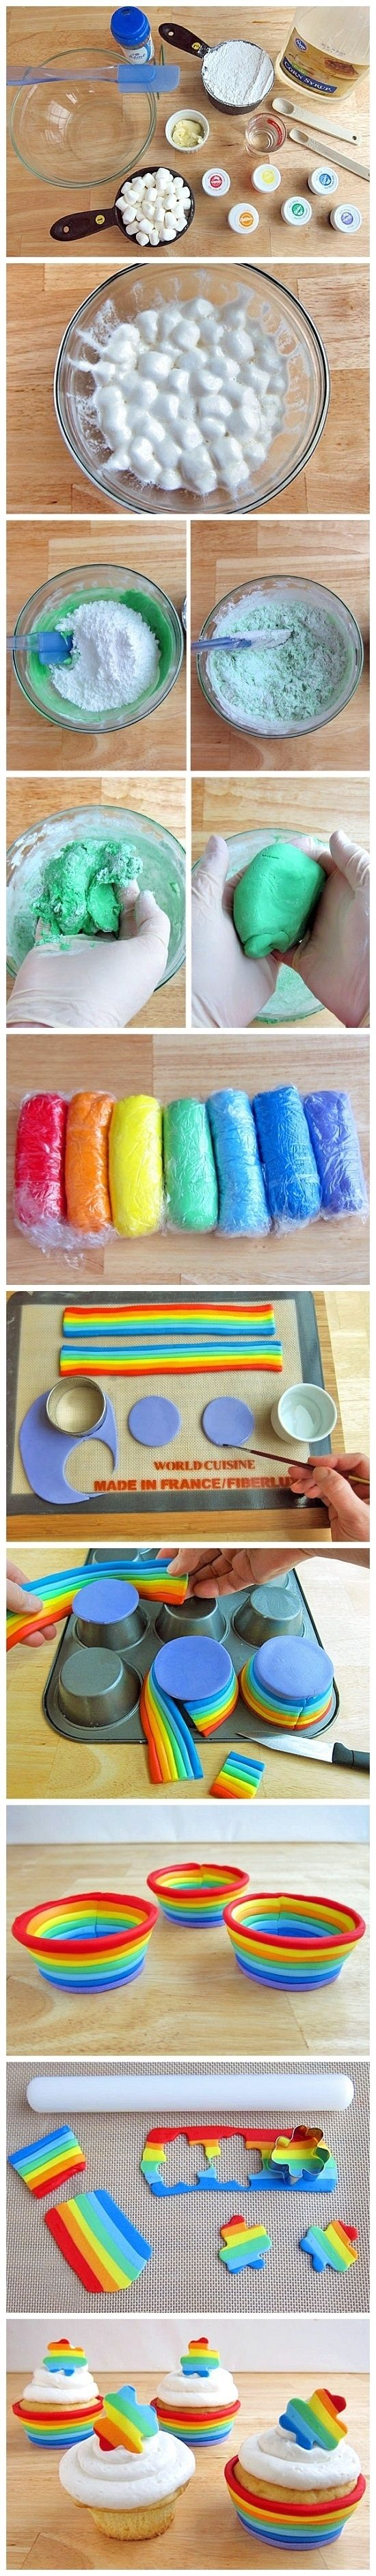 DIY Edible Cupcake Wrappers Pictures, Photos, and Images for Facebook, Tumblr, Pinterest, and Twitter